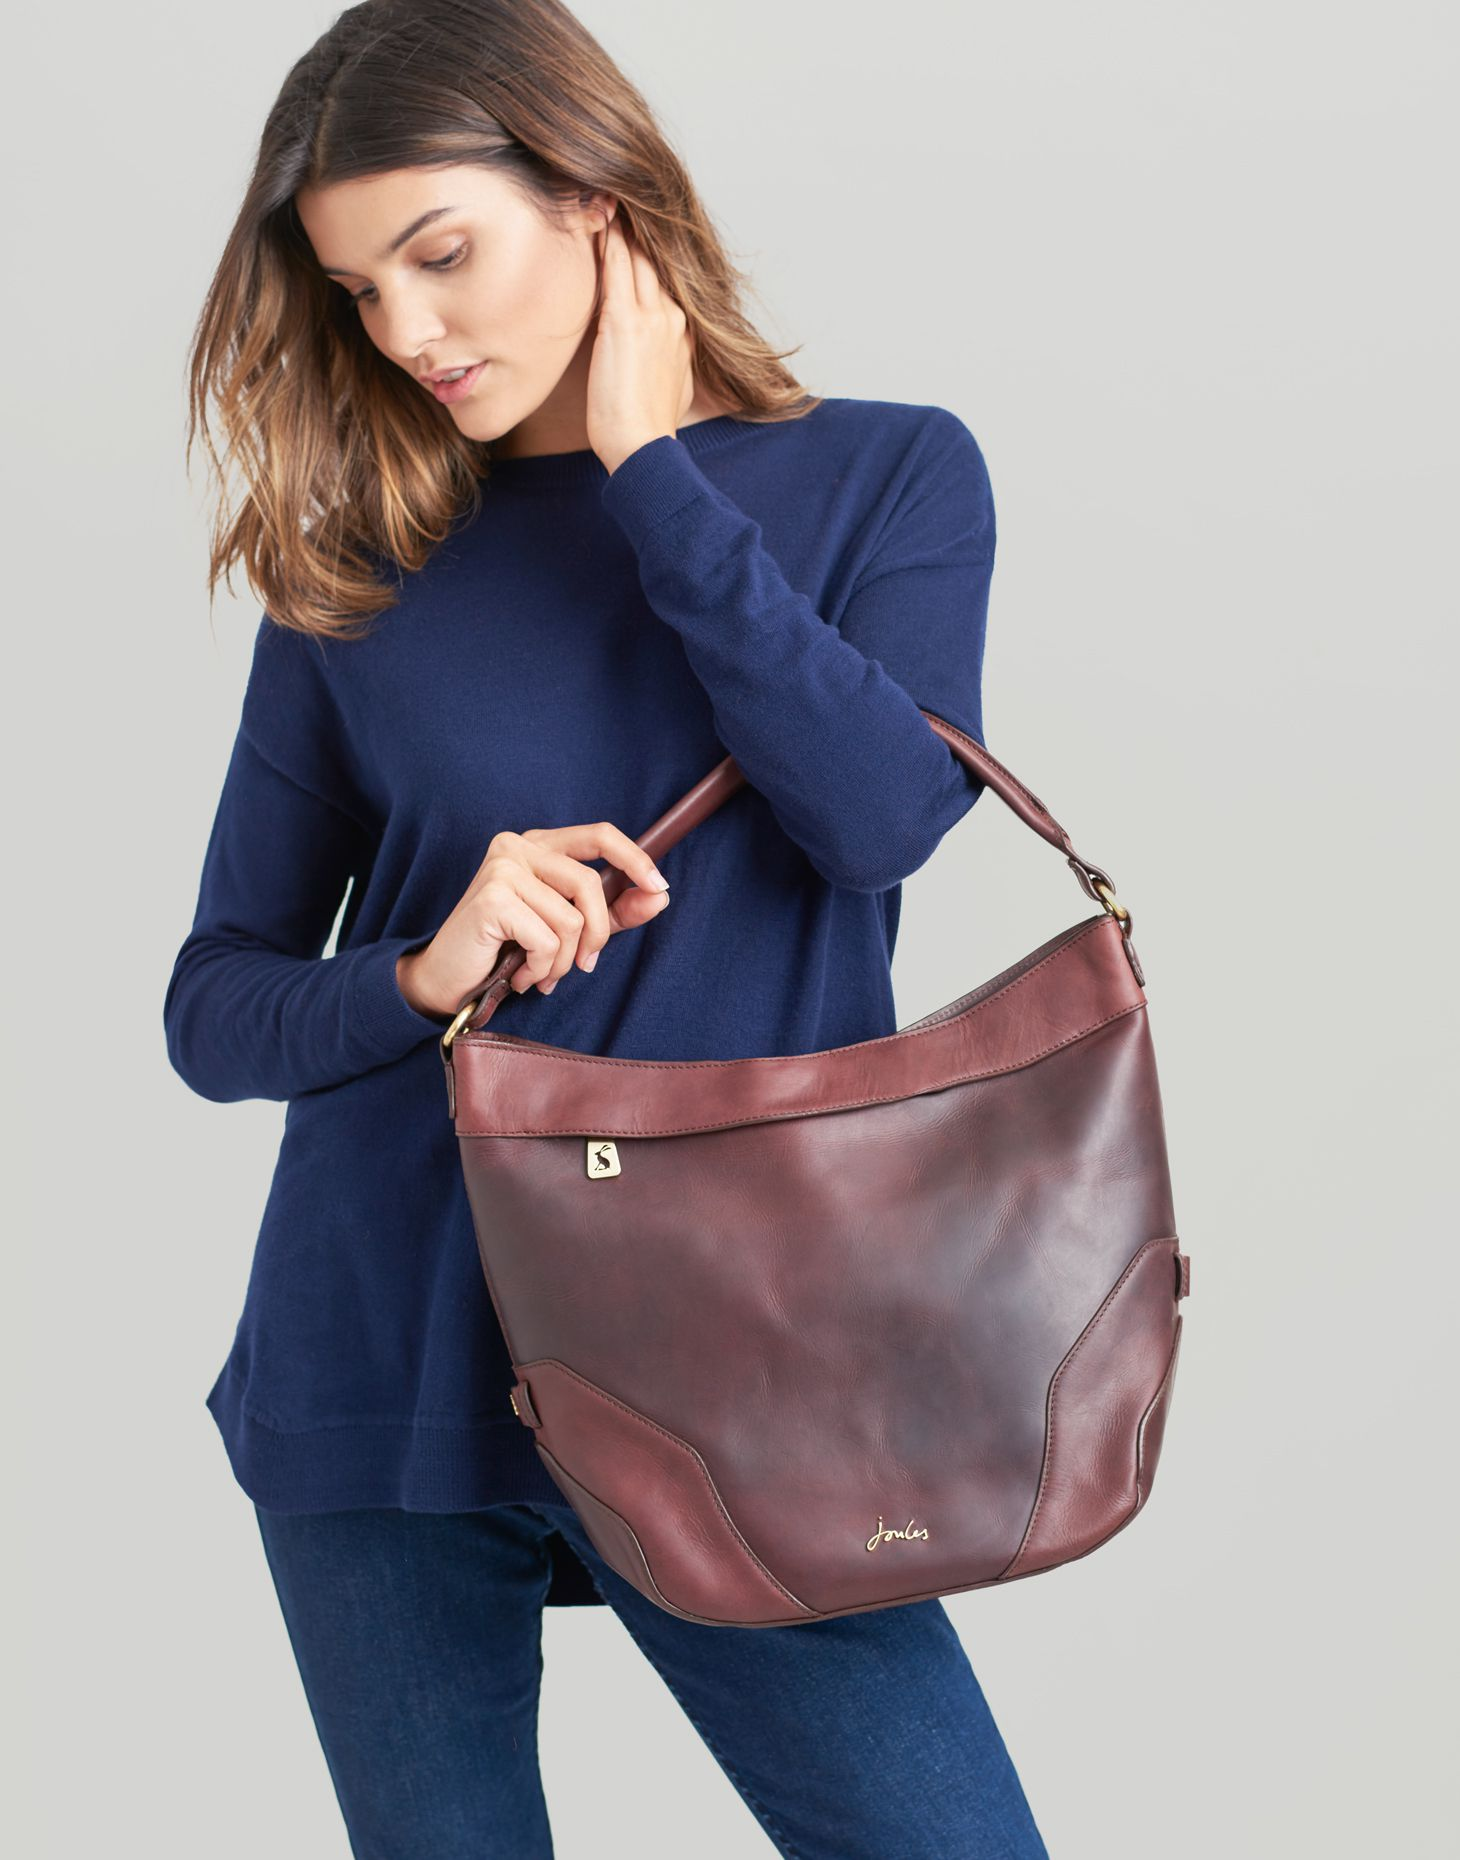 Lowesby null Leather Hobo Bag  cd2034dcccacb